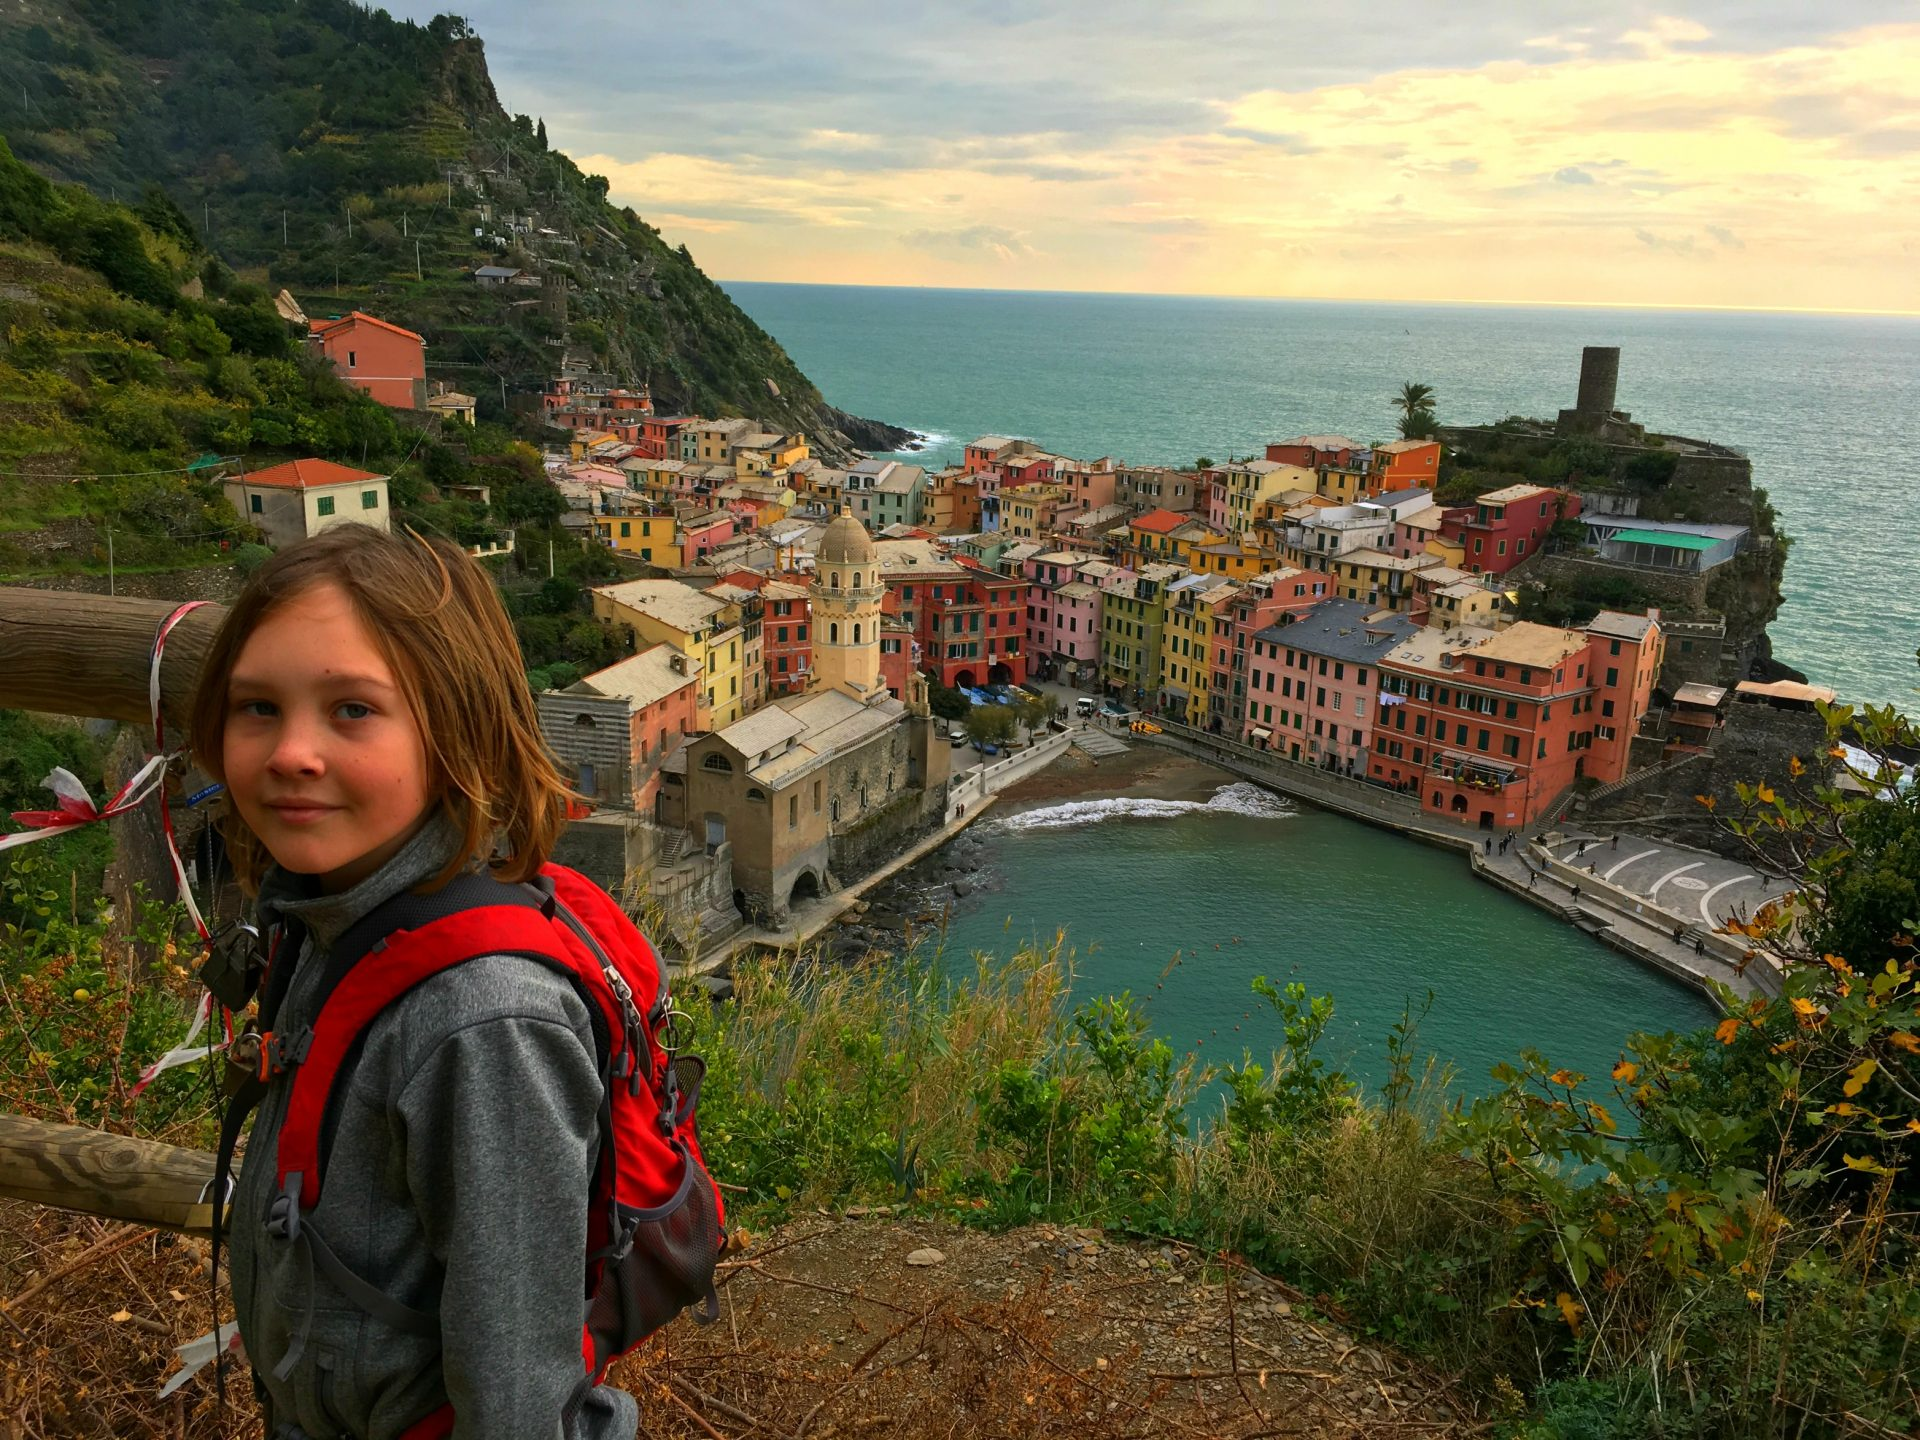 visiting cinque terre with kids, walking the cinque terre cinque terre by boat